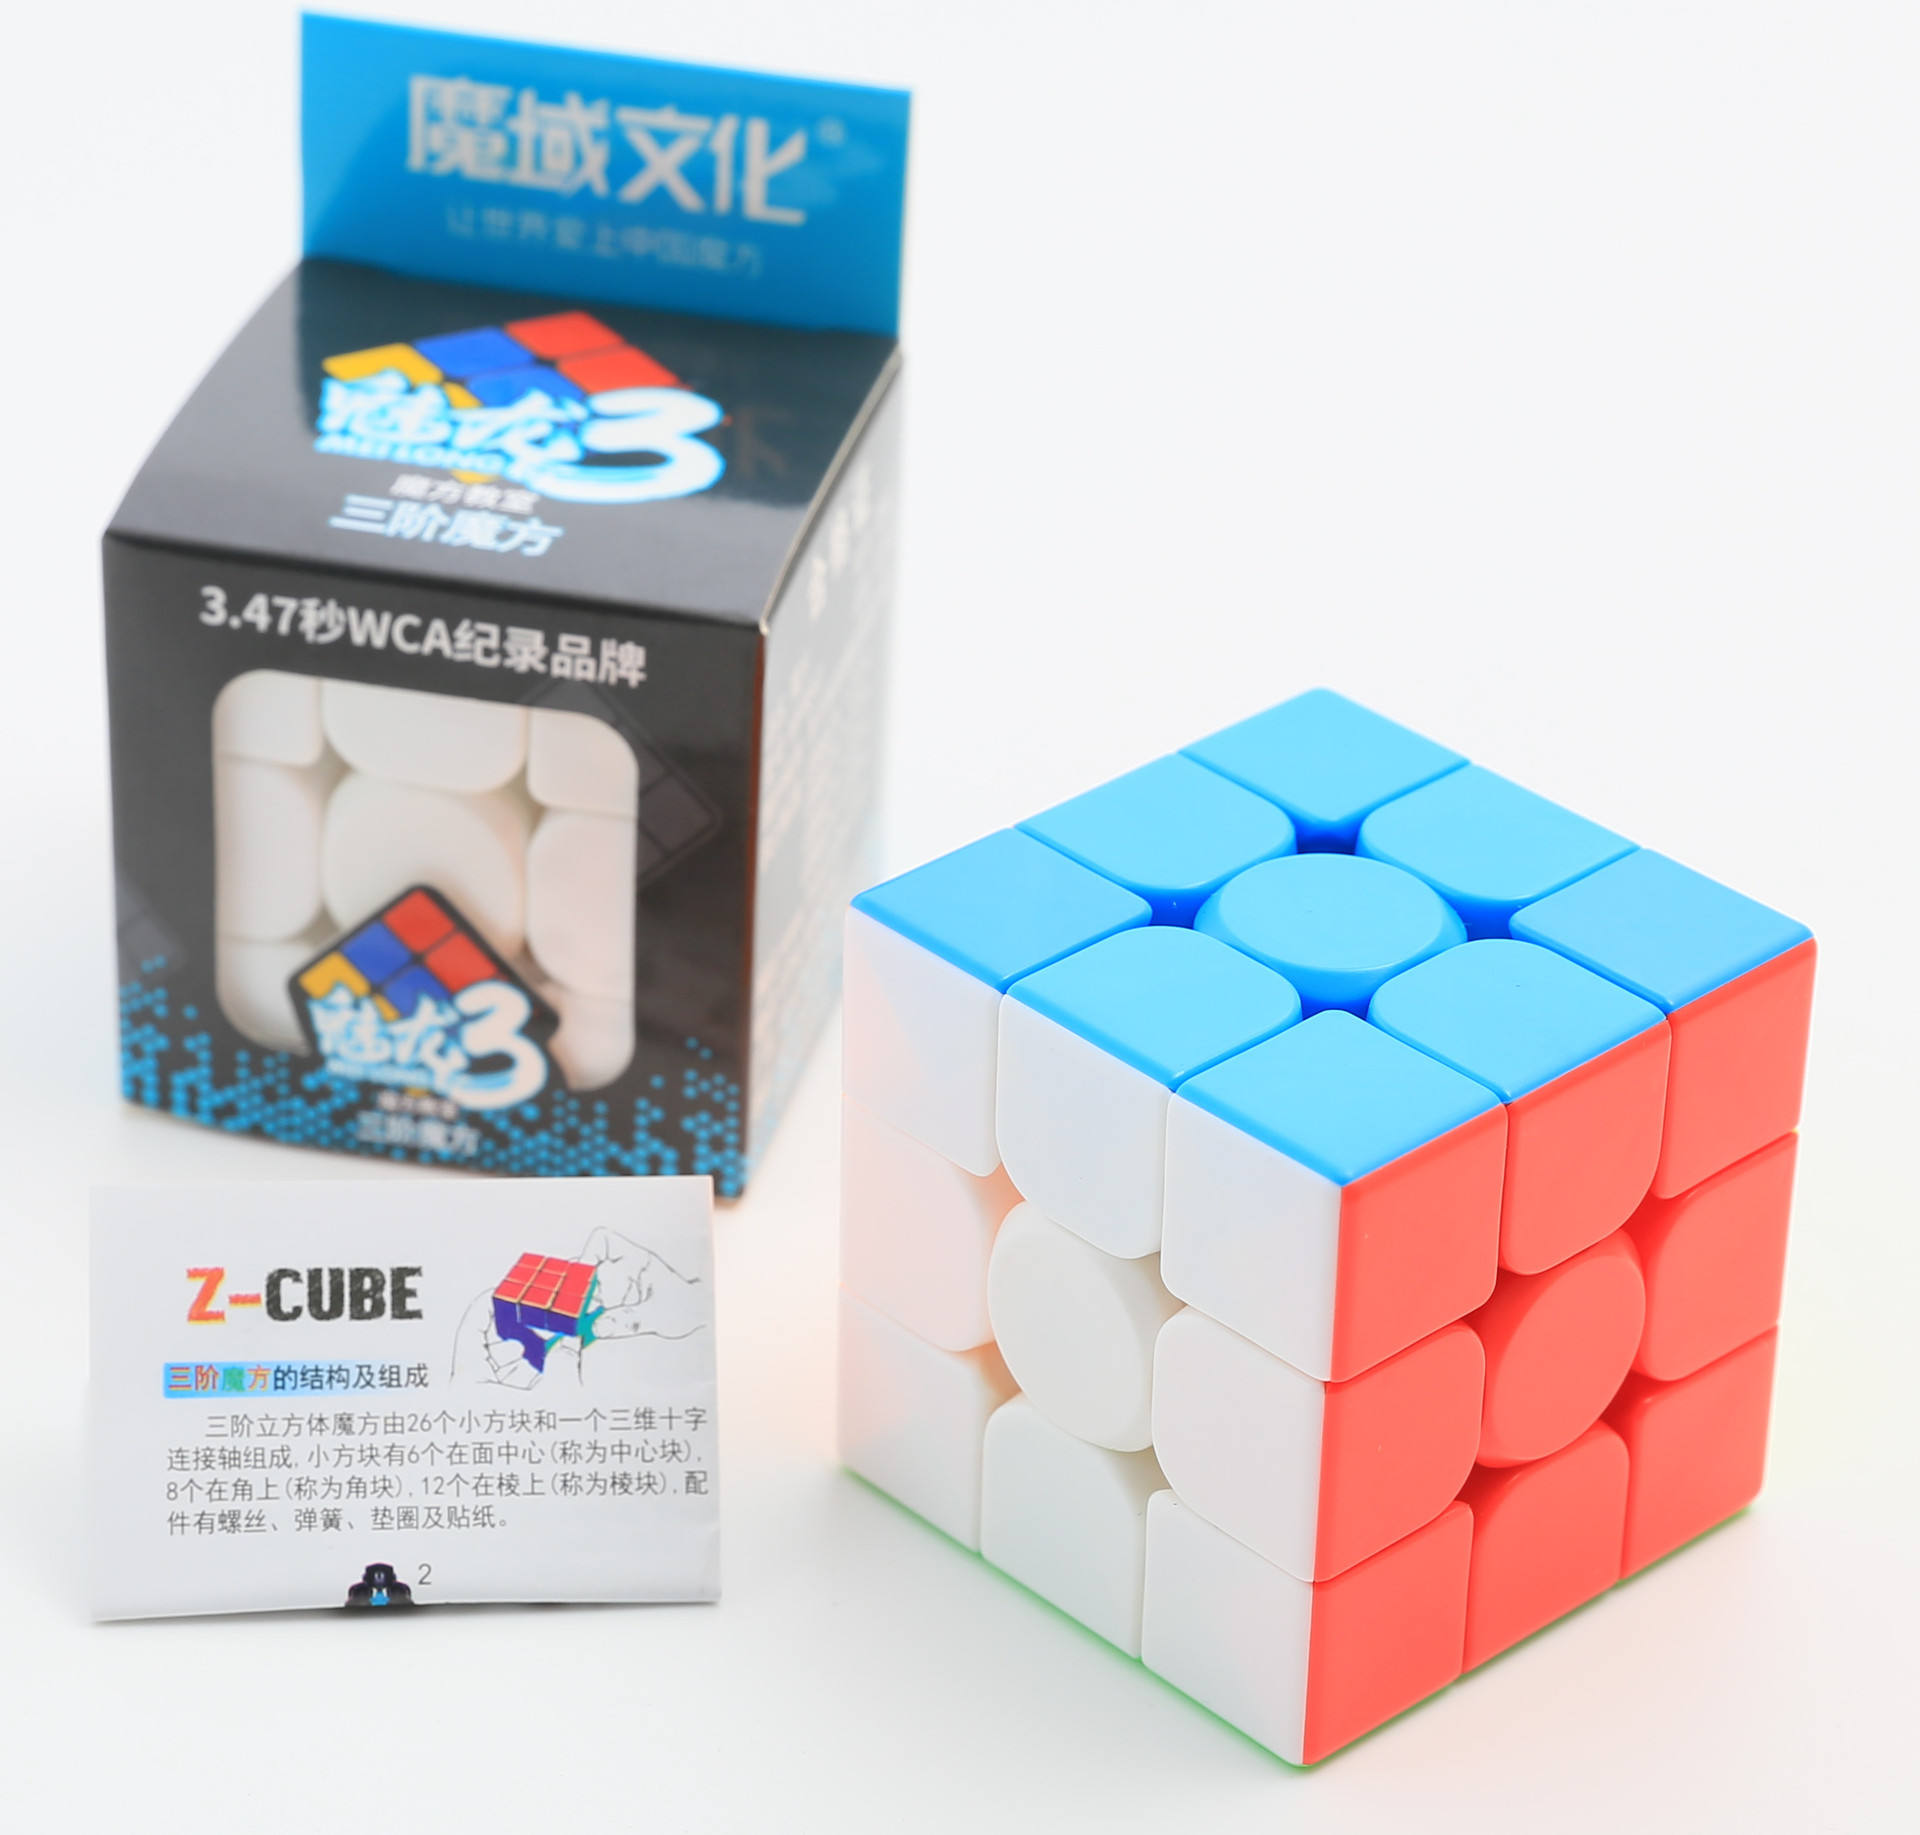 Mofangjiaoshi Meilong moyu 3x3x3 magic cube stickerless 3x3 speed cubes toys for kids education